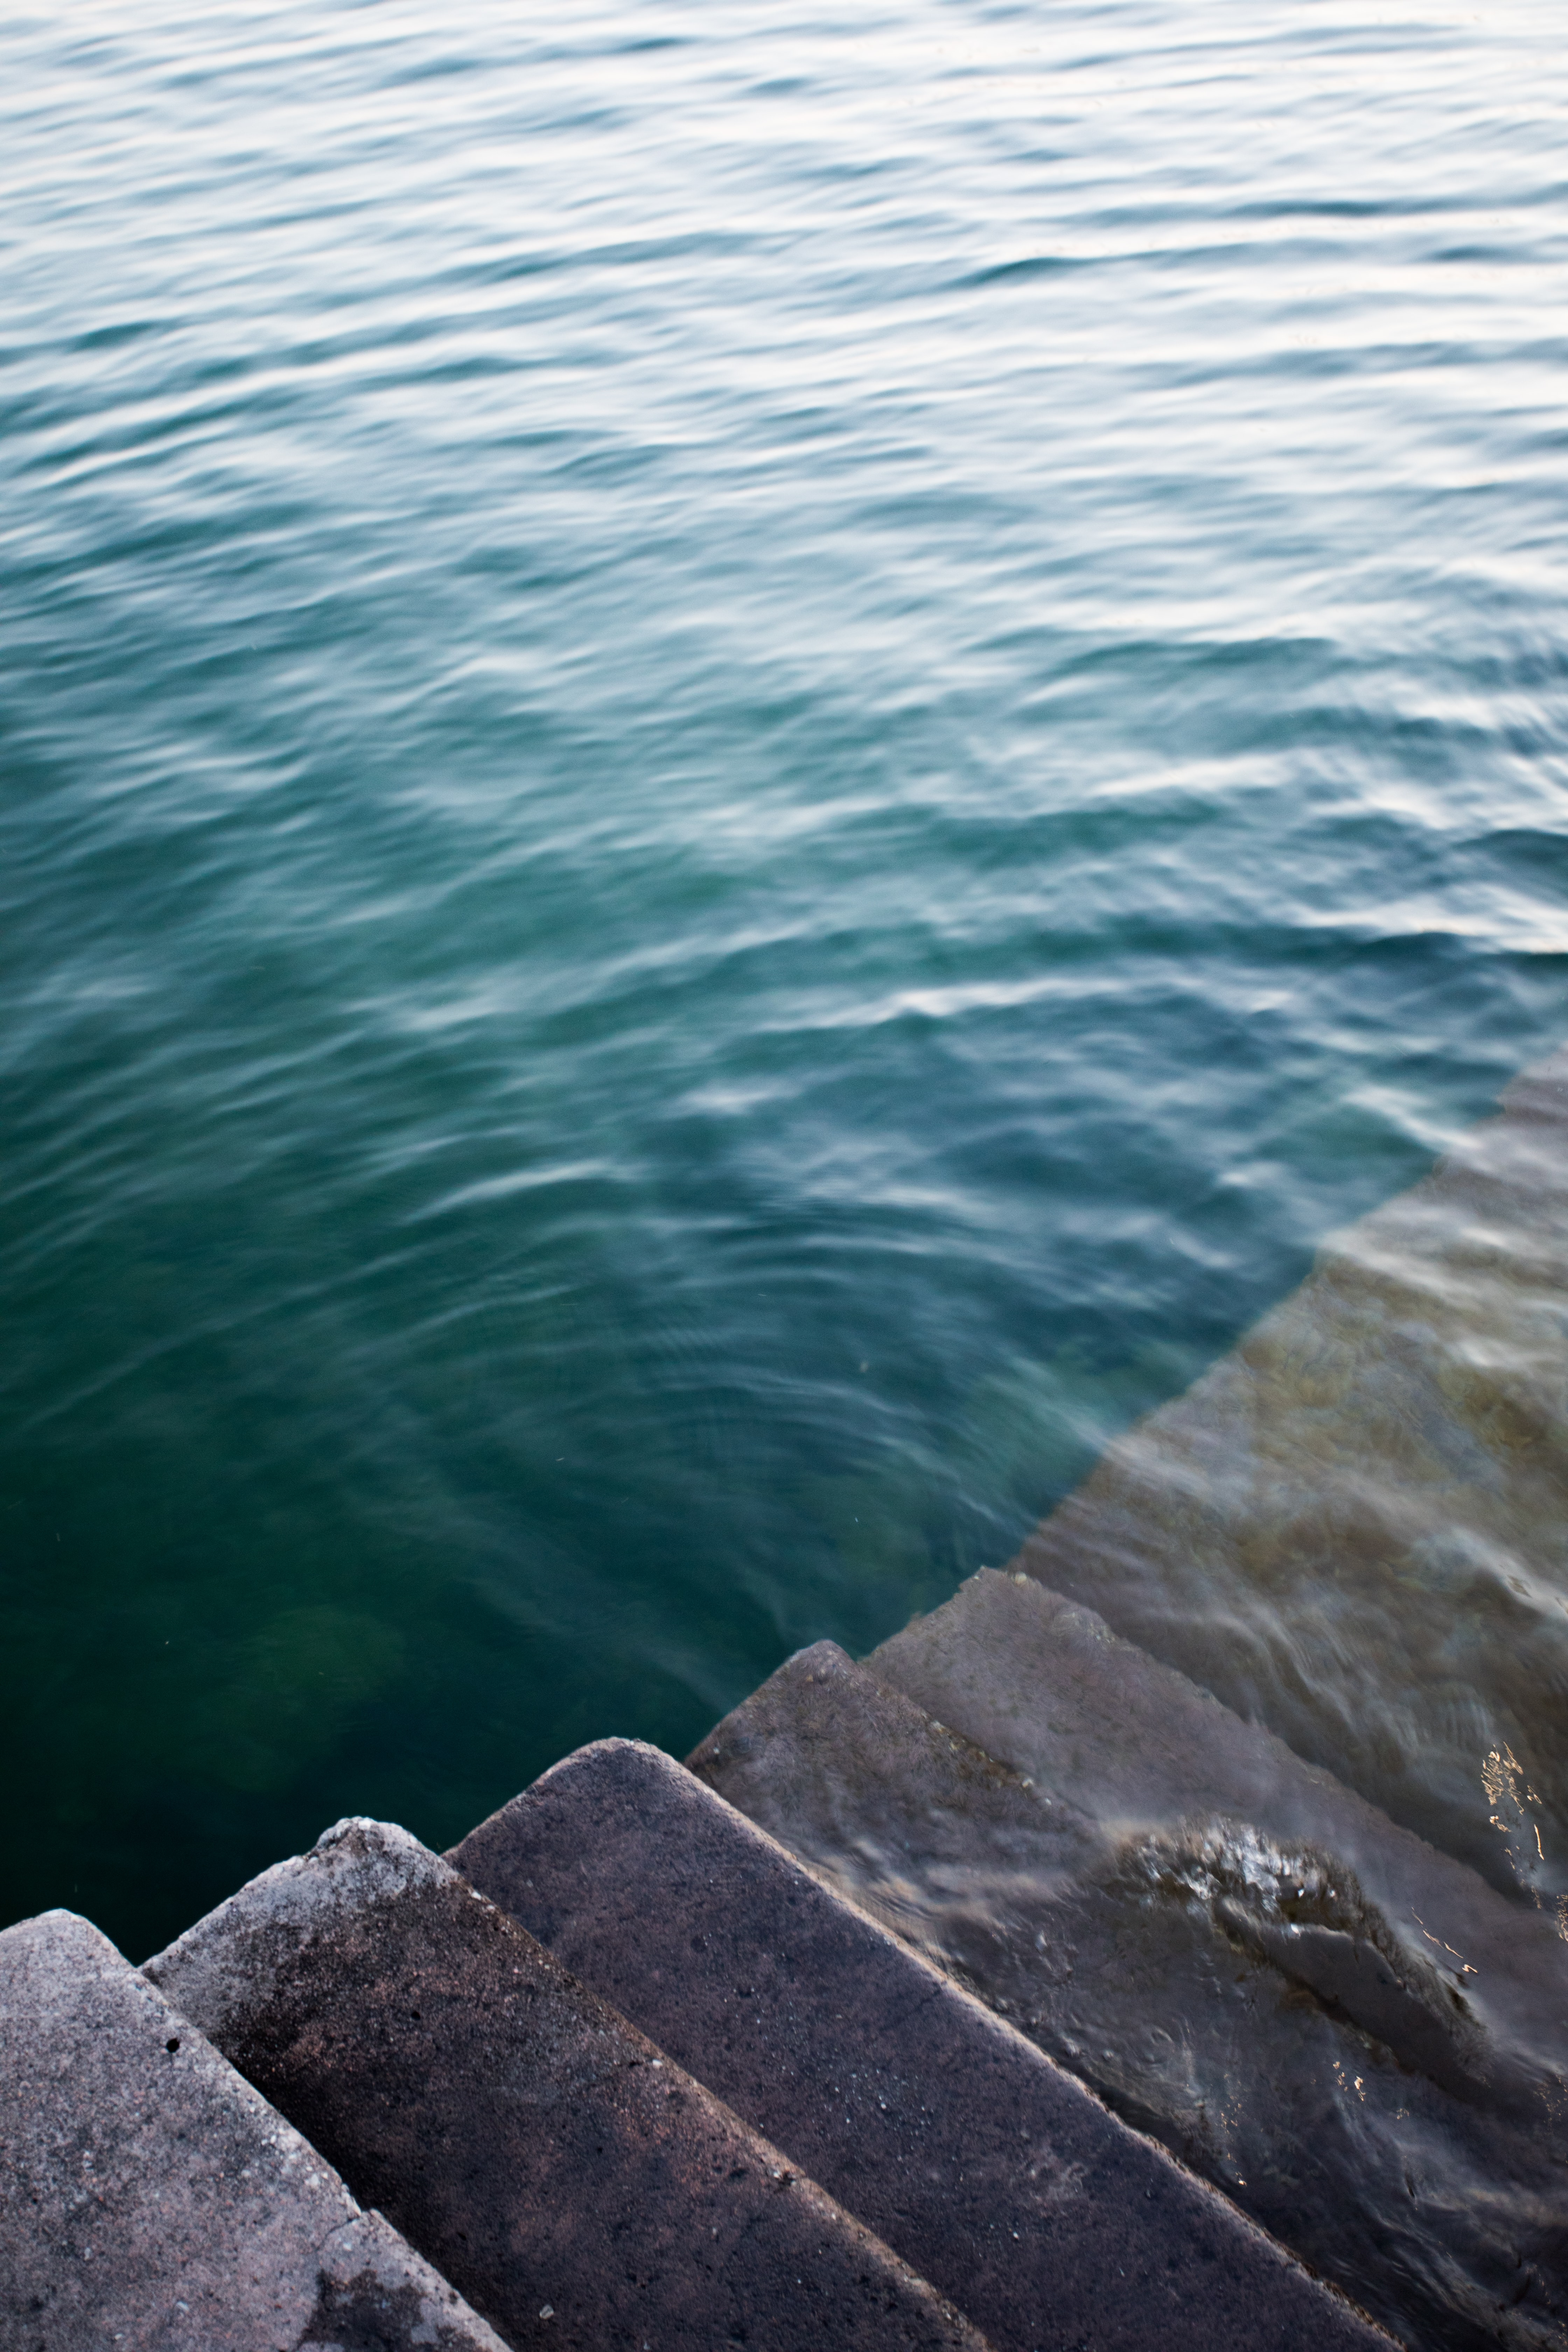 gray concrete stair in body of water